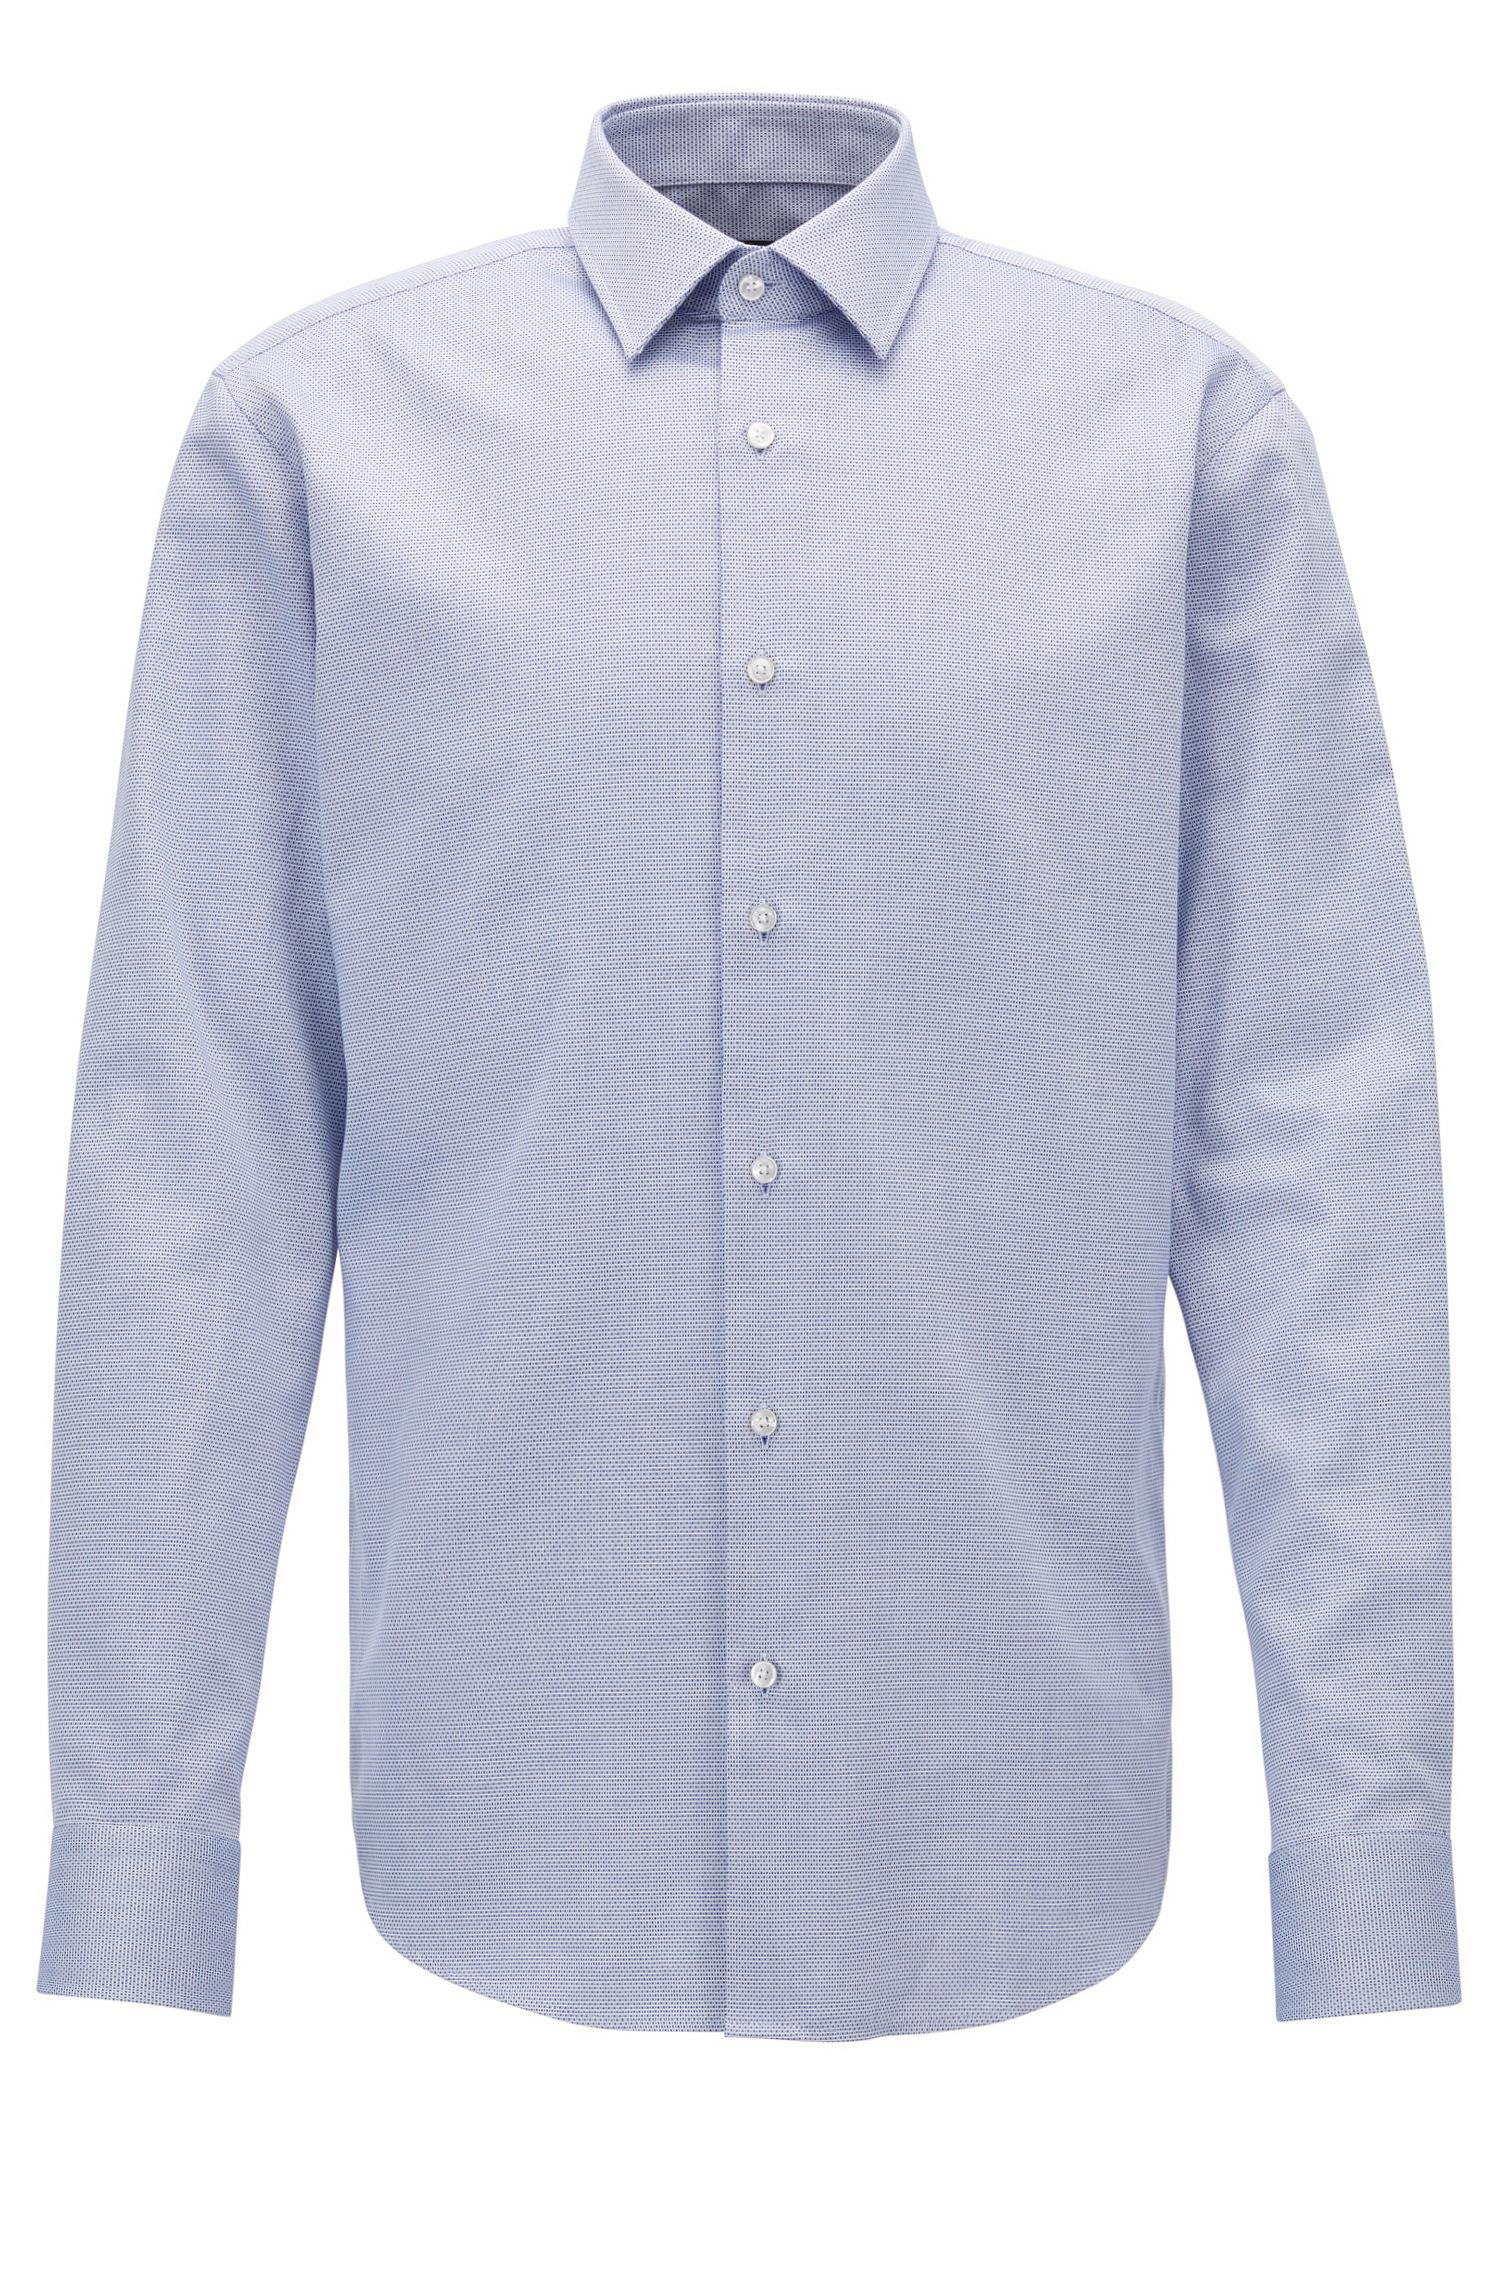 Lyst boss regular fit formal shirt in structured cotton for Hugo boss formal shirts